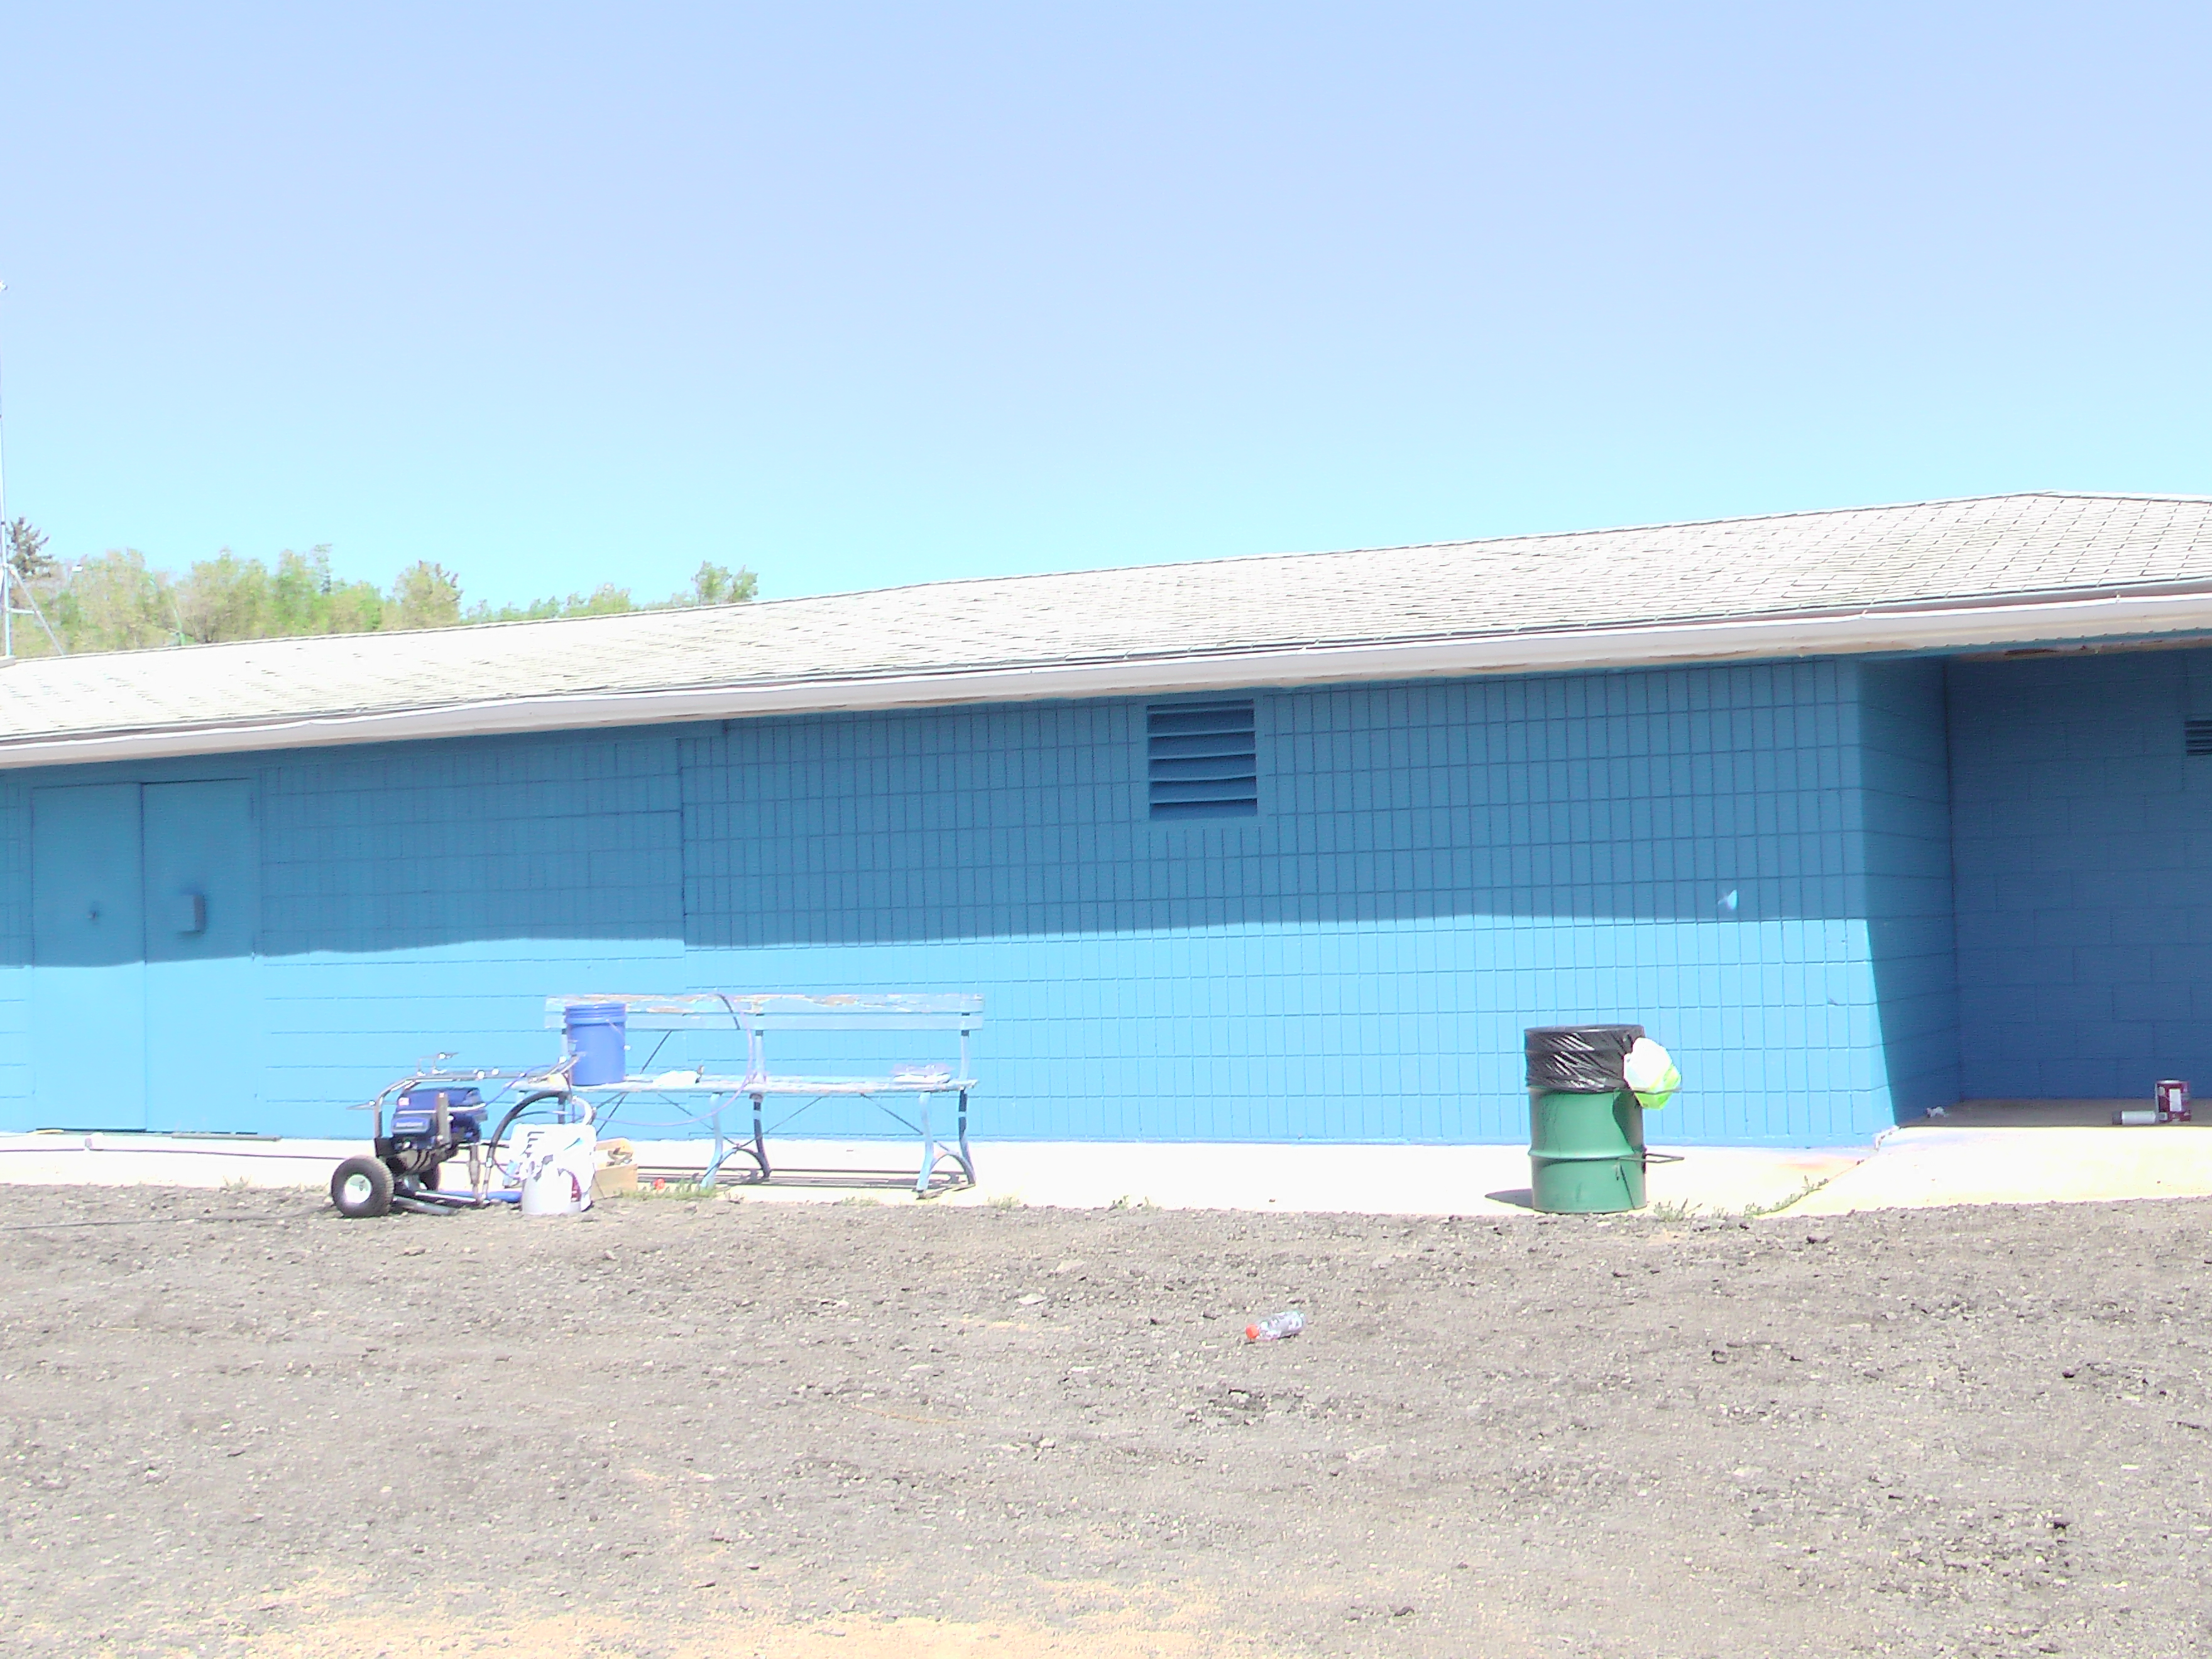 A BIG Thank You to Sherwin Williams and Staff for Supplying Volunteers and Paint for the Park! Video and Pics! - Image 7